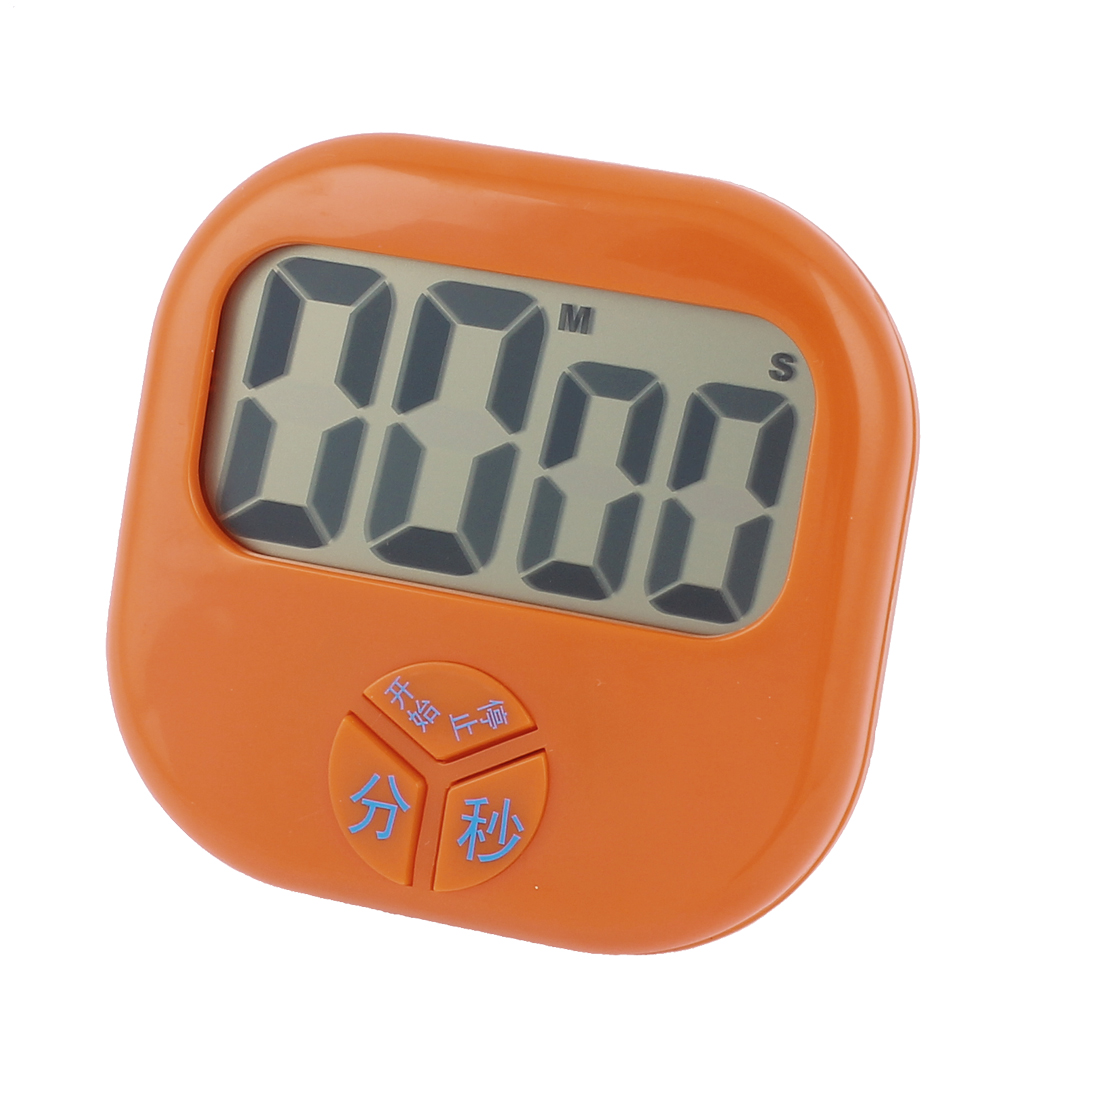 Alarm Portable Digital Second Minute Count Down Timer Orange